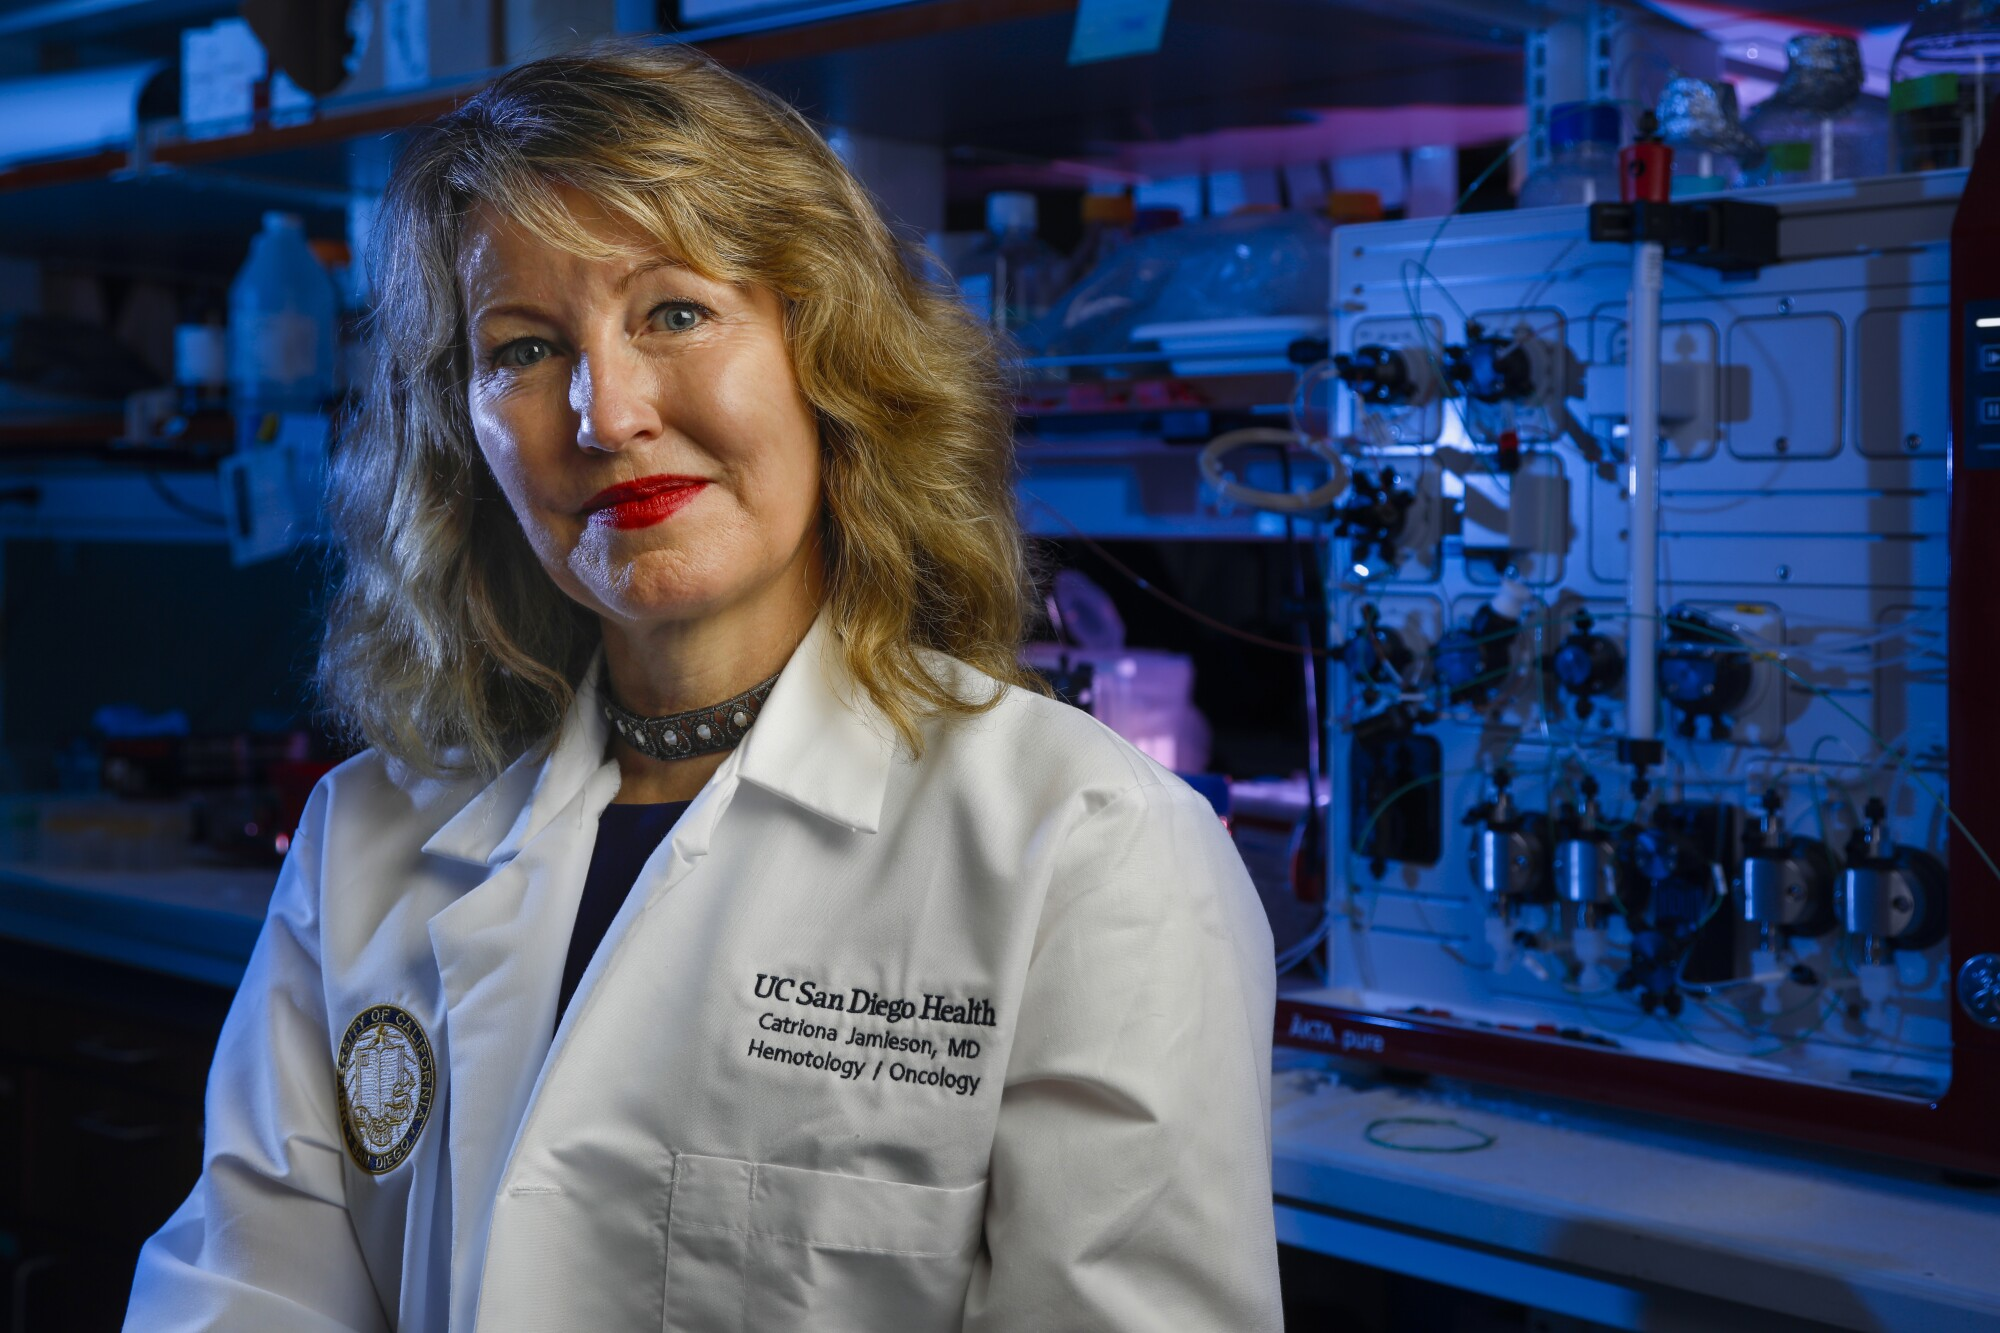 Dr. Catriona Jamieson treats patients with blood cancers. The UCSD oncologist is also a researcher who helped prove that a recently approved cancer drug, fedratinib, was a good candidate for clinical testing. Jamieson is shown in her lab at the Sanford Consortium for Regenerative Medicine on October 4, 2019, in San Diego.